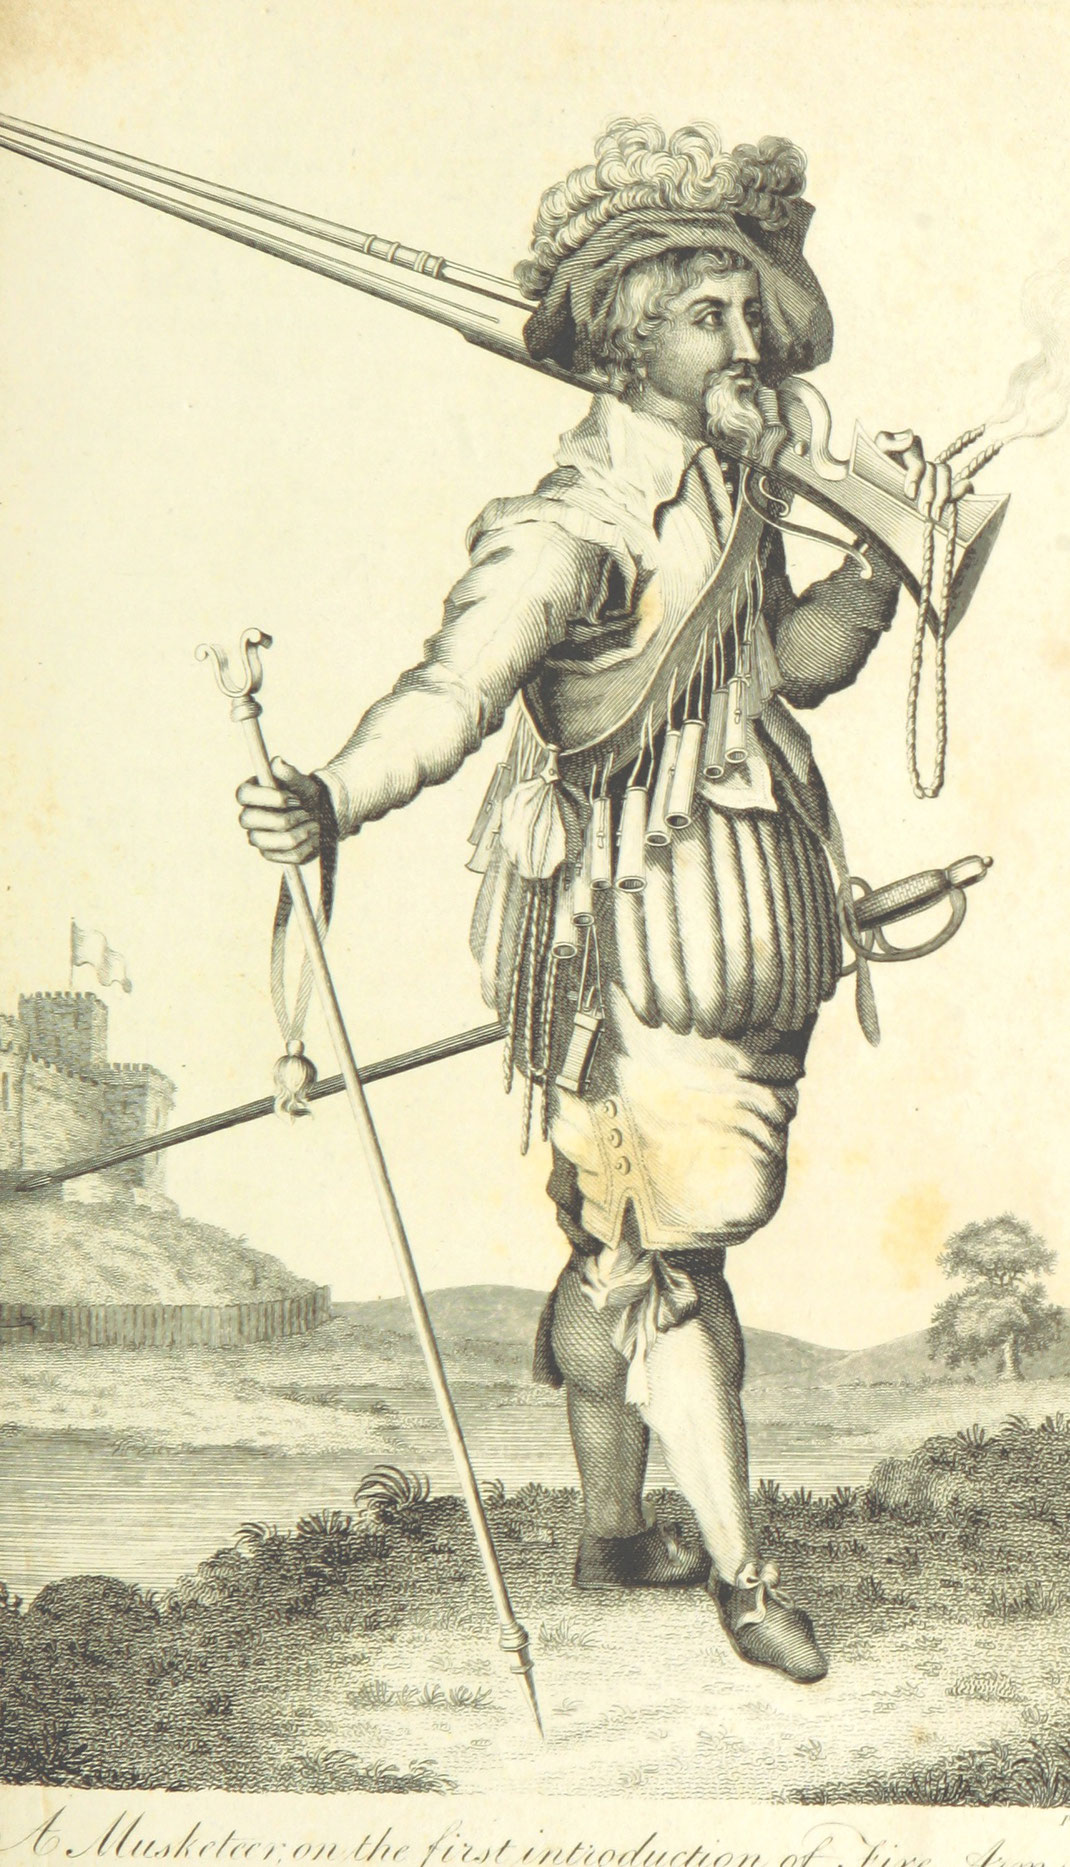 historic picture of a Musketeer with a Musket Fork